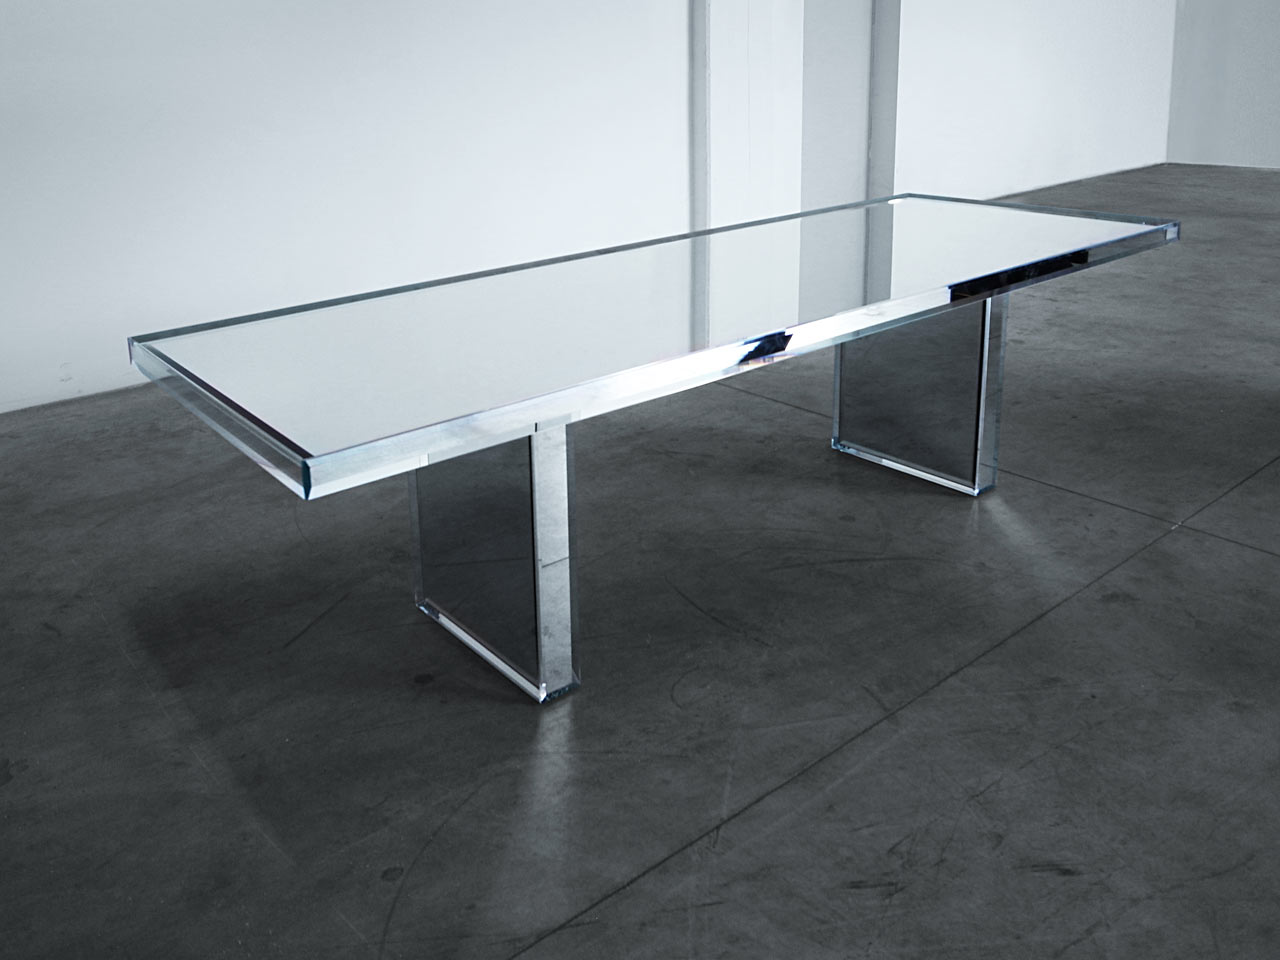 mirror table. prism mirror table designed by tokujin yoshioka e